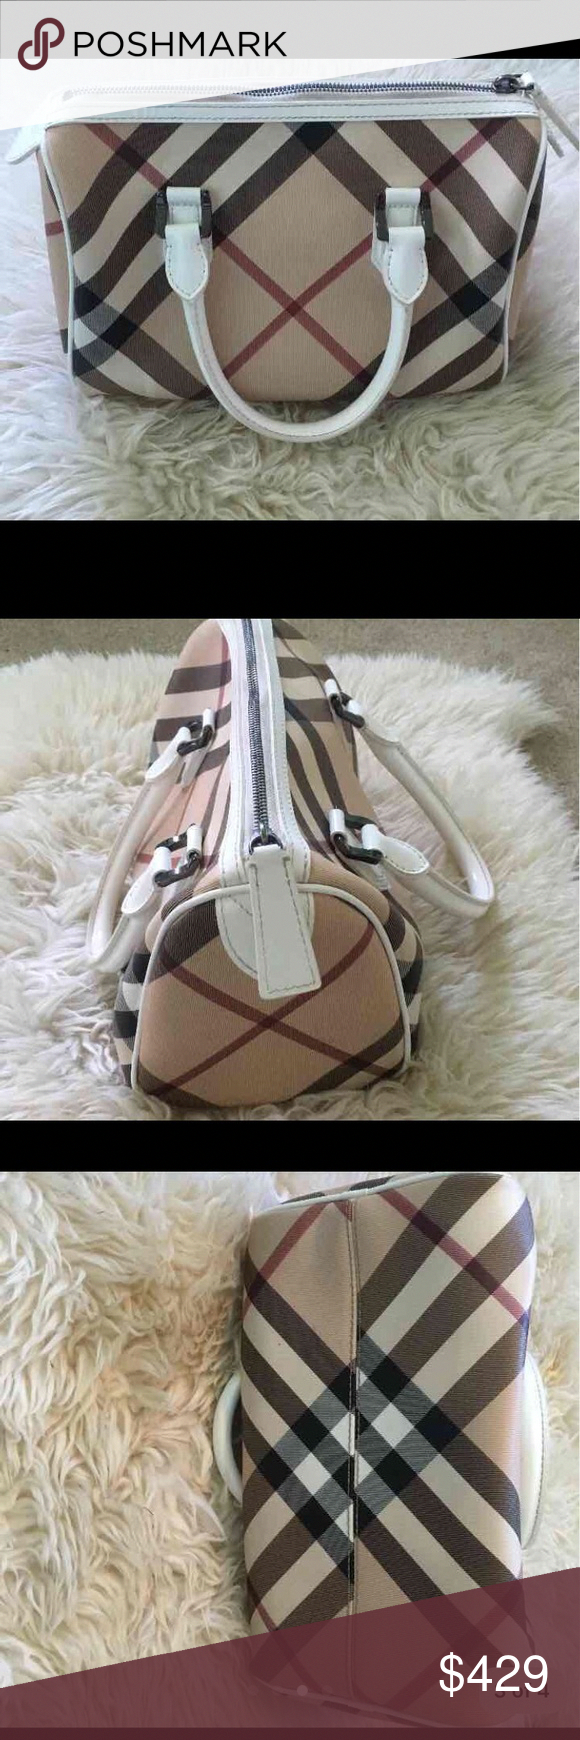 a4d6674e616c Authentic Burberry Handbag BURBERRY Nova Check Small Chester Bowling Bag In  white. In super great